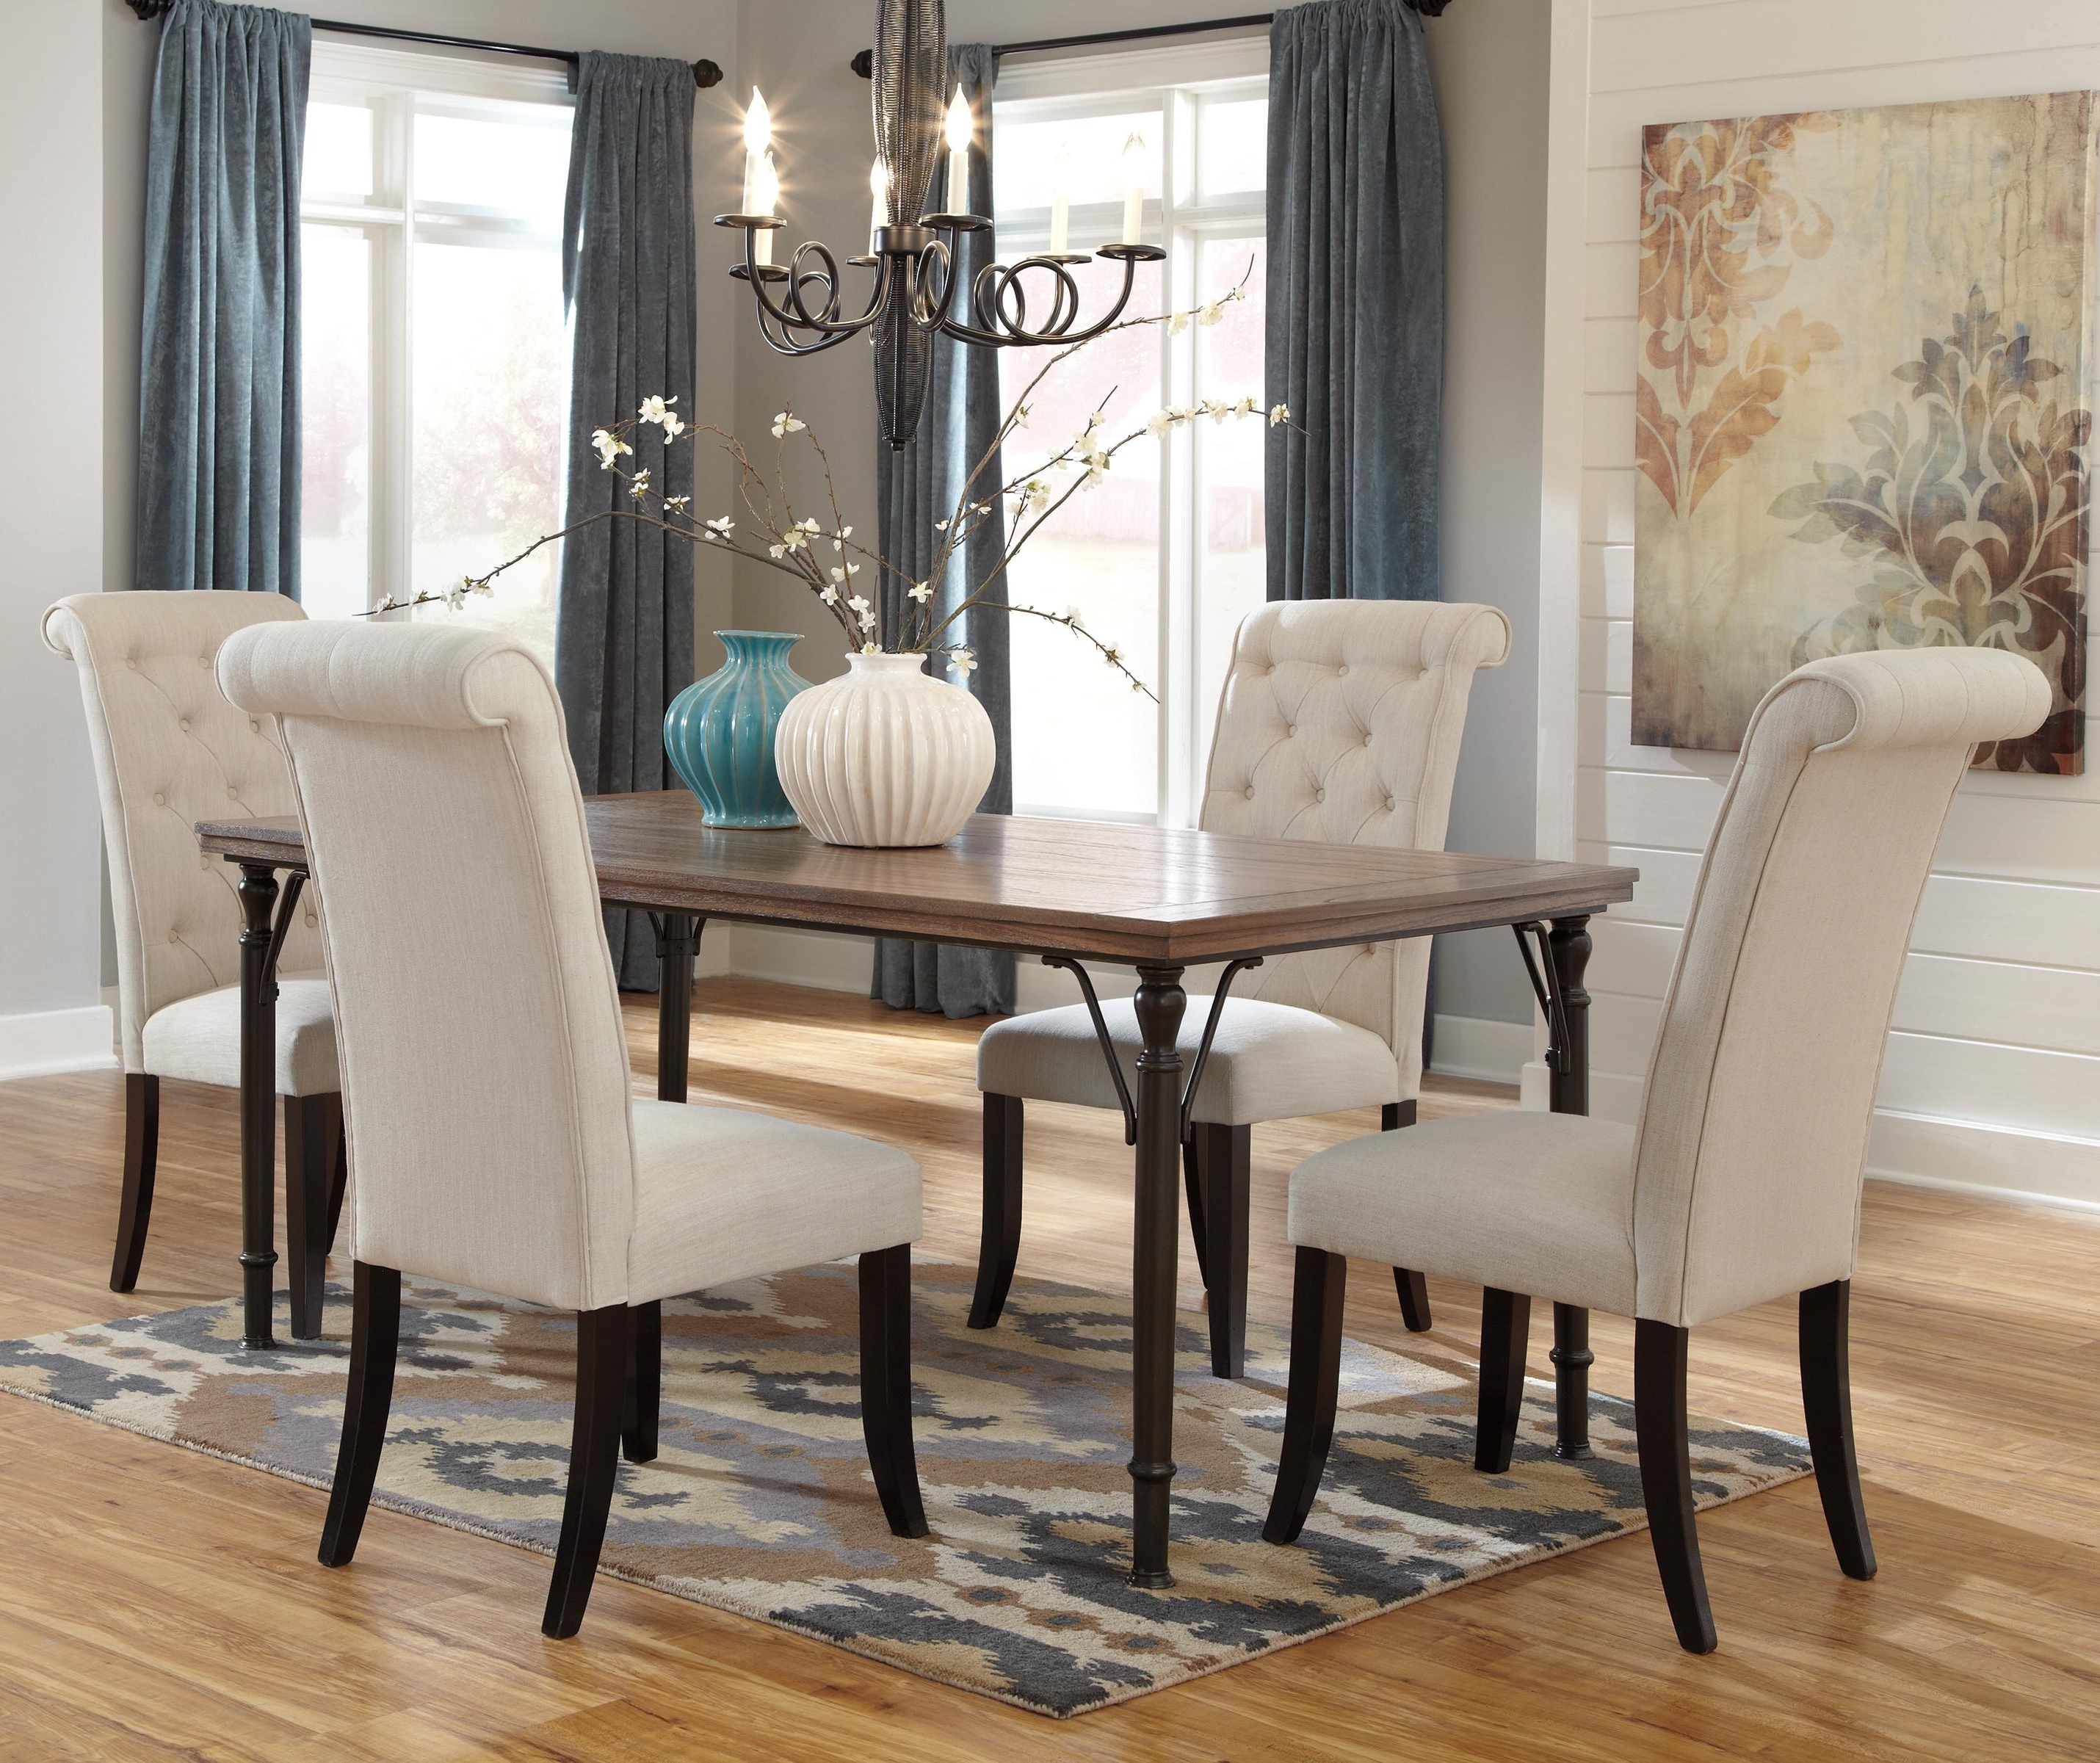 Well Liked 5 Piece Rectangular Dining Room Table Set W/ Wood Top & Metal Legs Pertaining To Rectangular Dining Tables Sets (View 8 of 25)